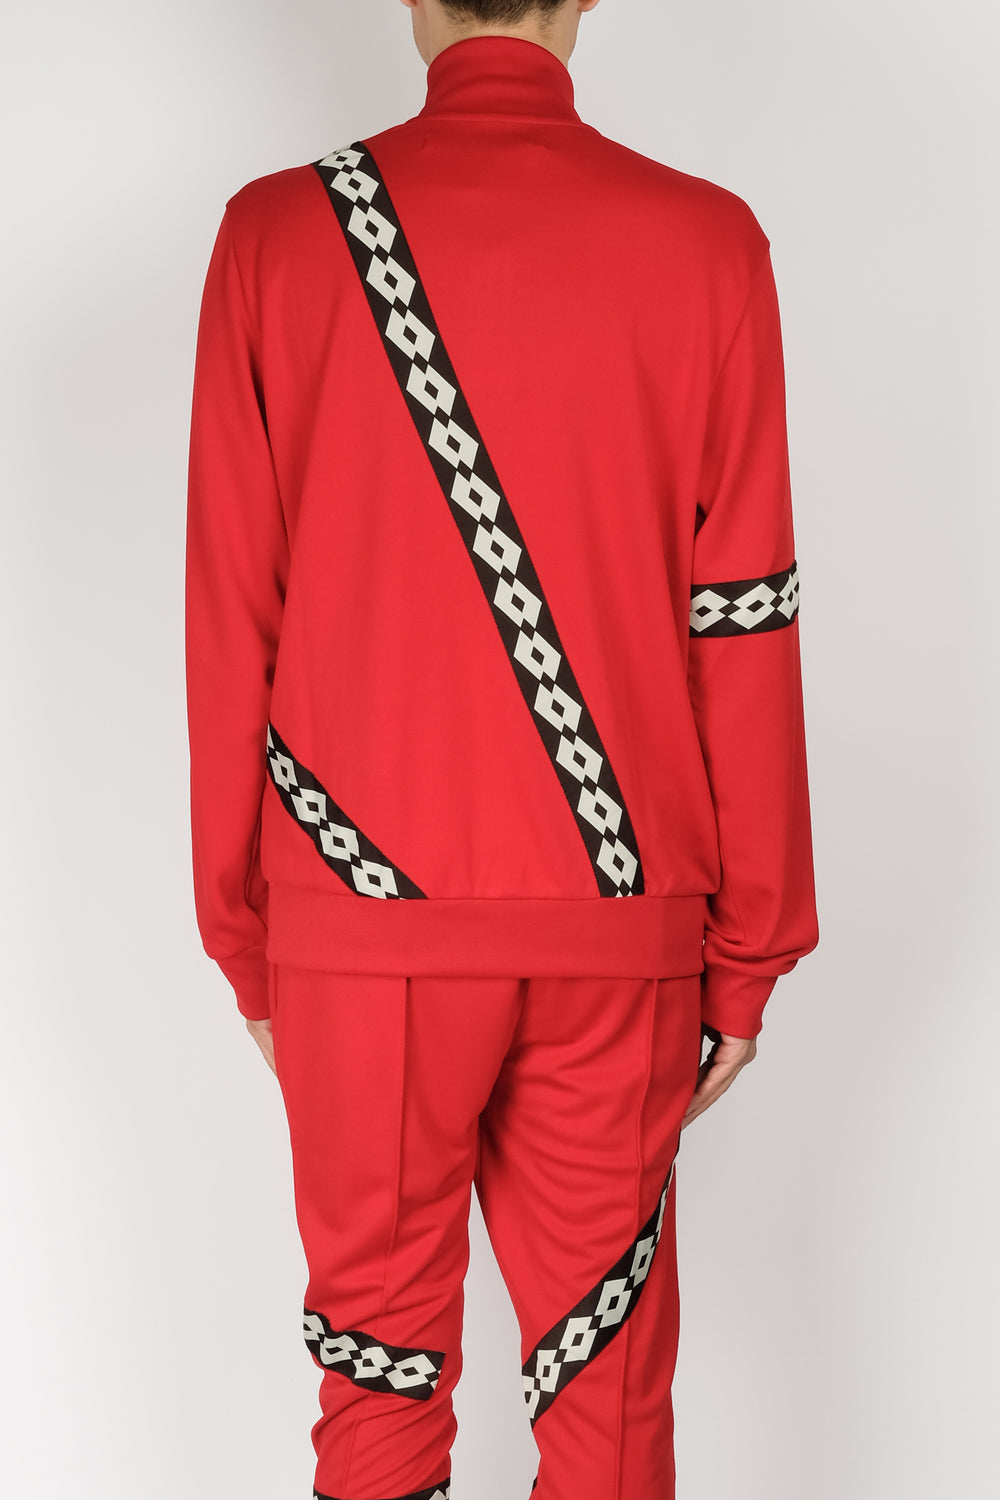 Damir Doma X Lotto Winka Jacket In Red